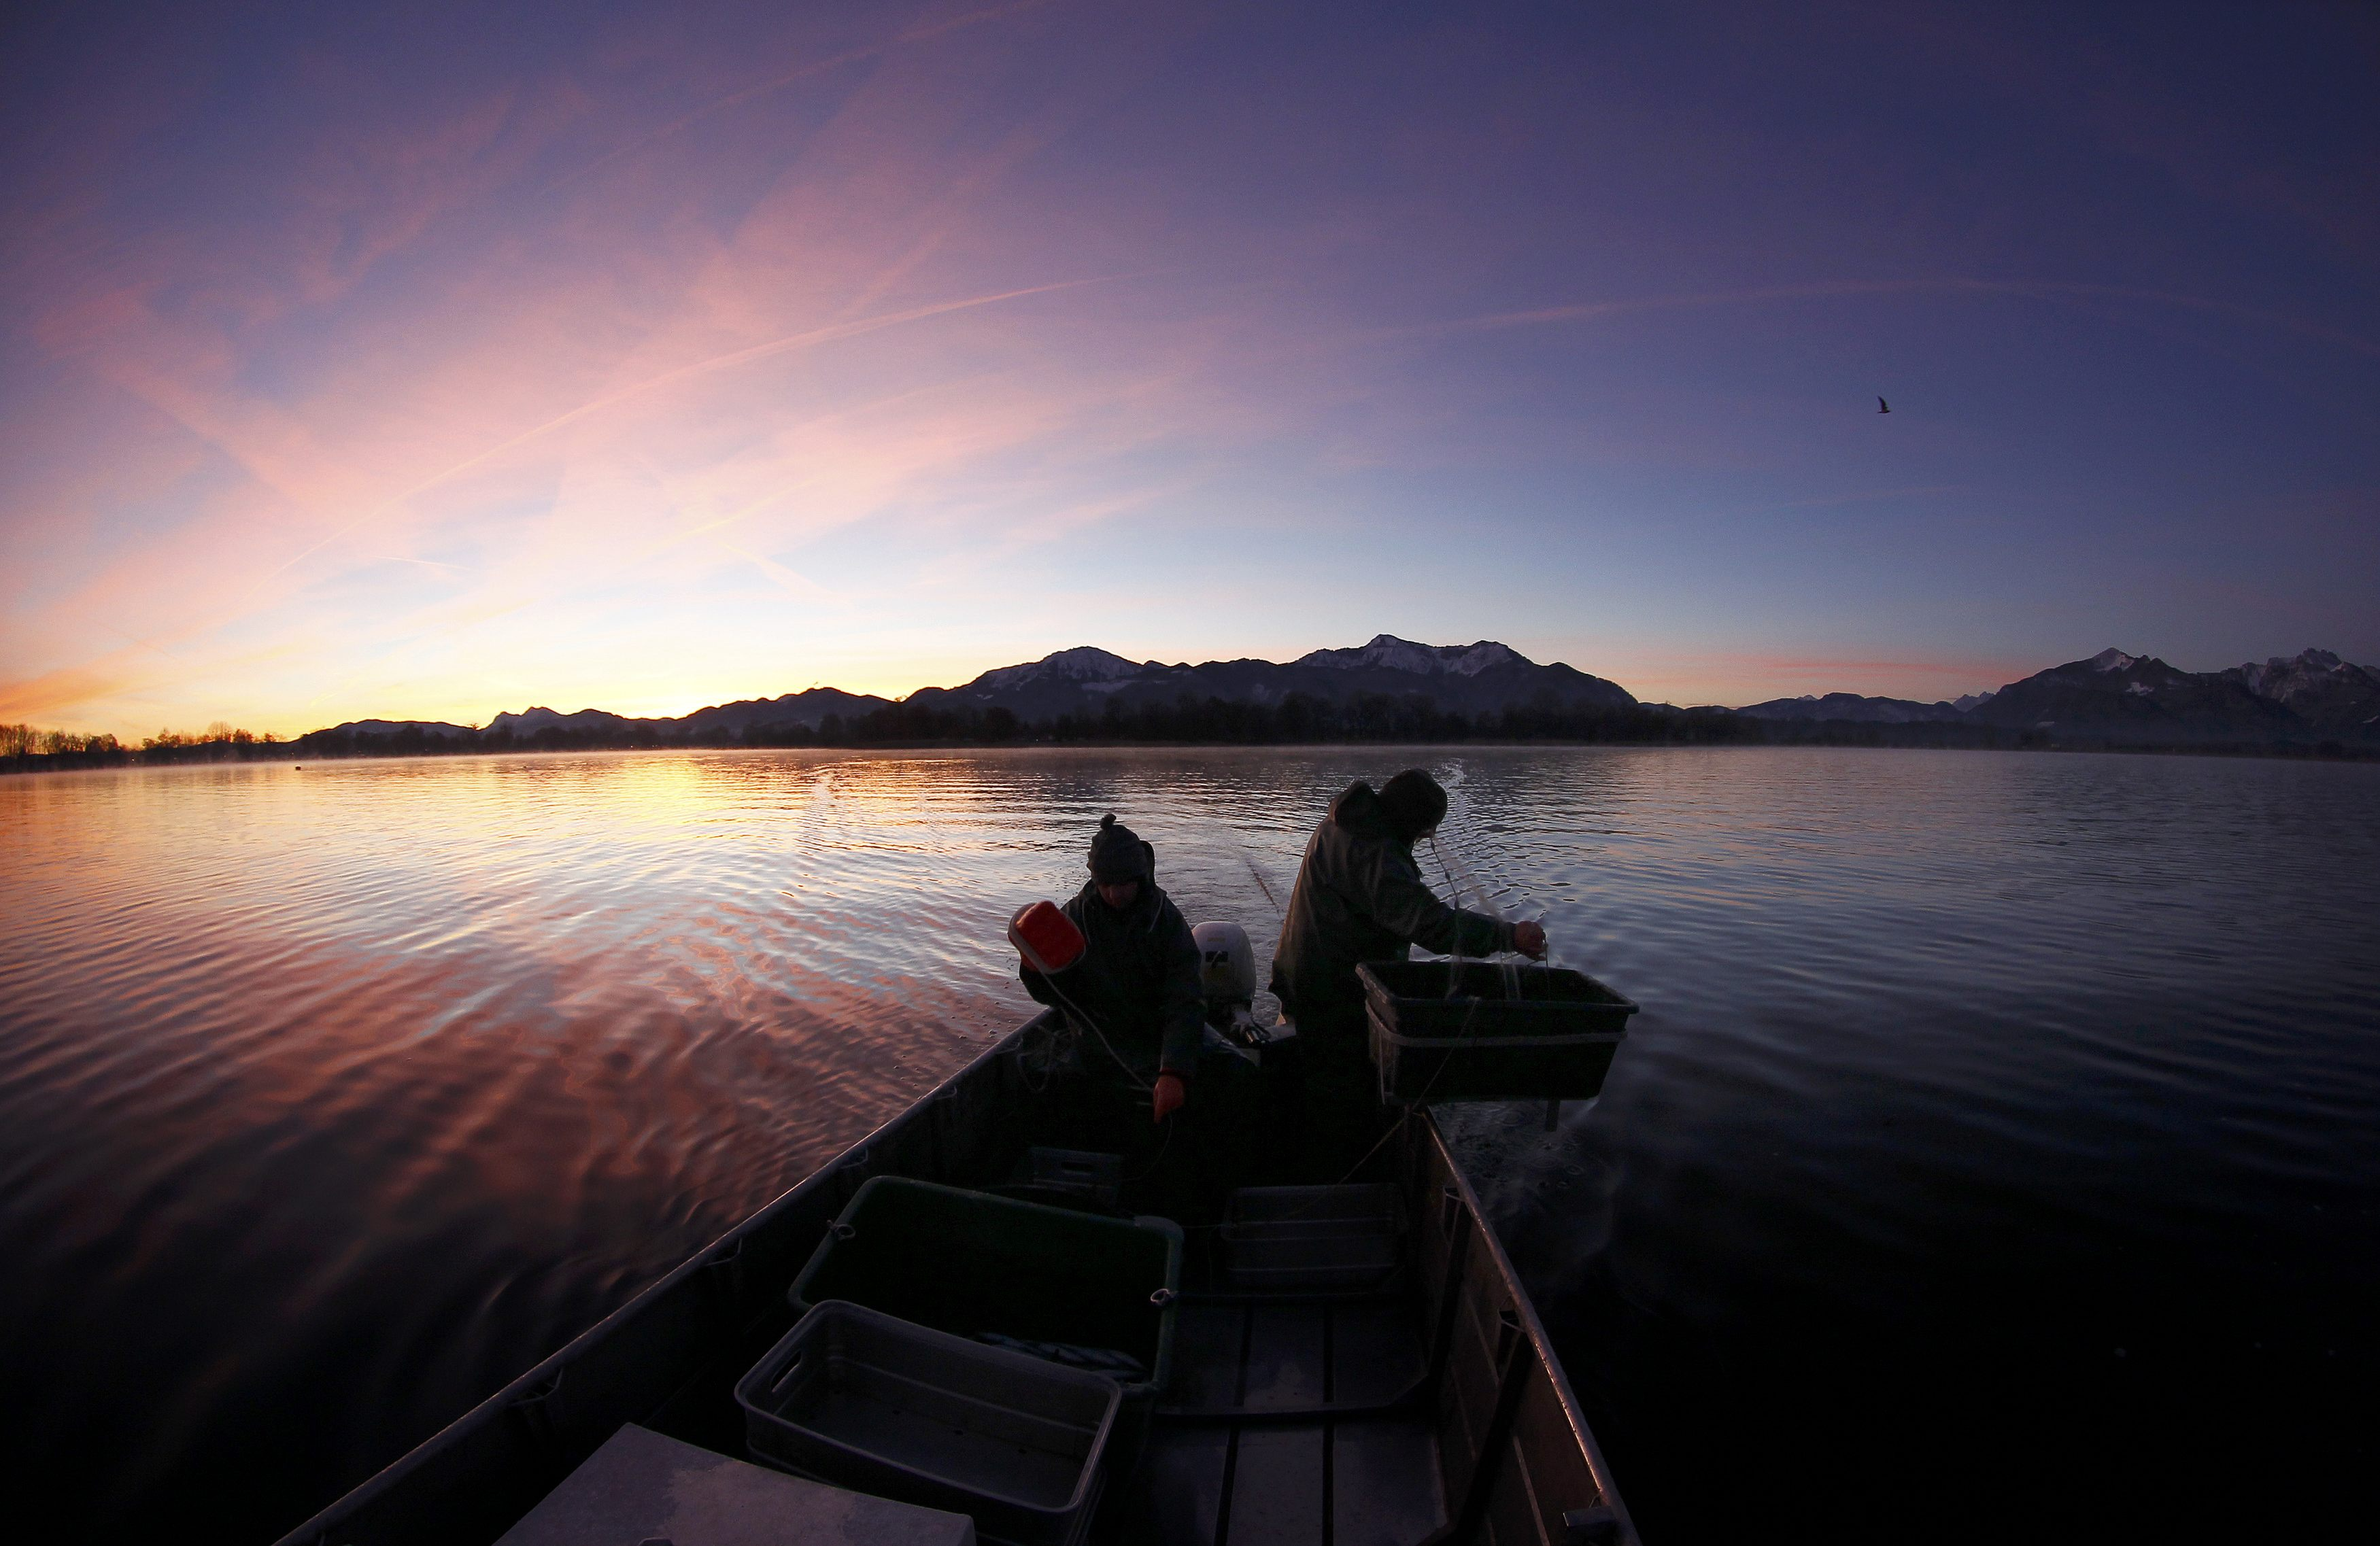 Fisherman Schaber, one of the oldest Chiemsee fishermen, and fisherman Boess haul in their nets with whitefish at lake Chiemsee near Prien